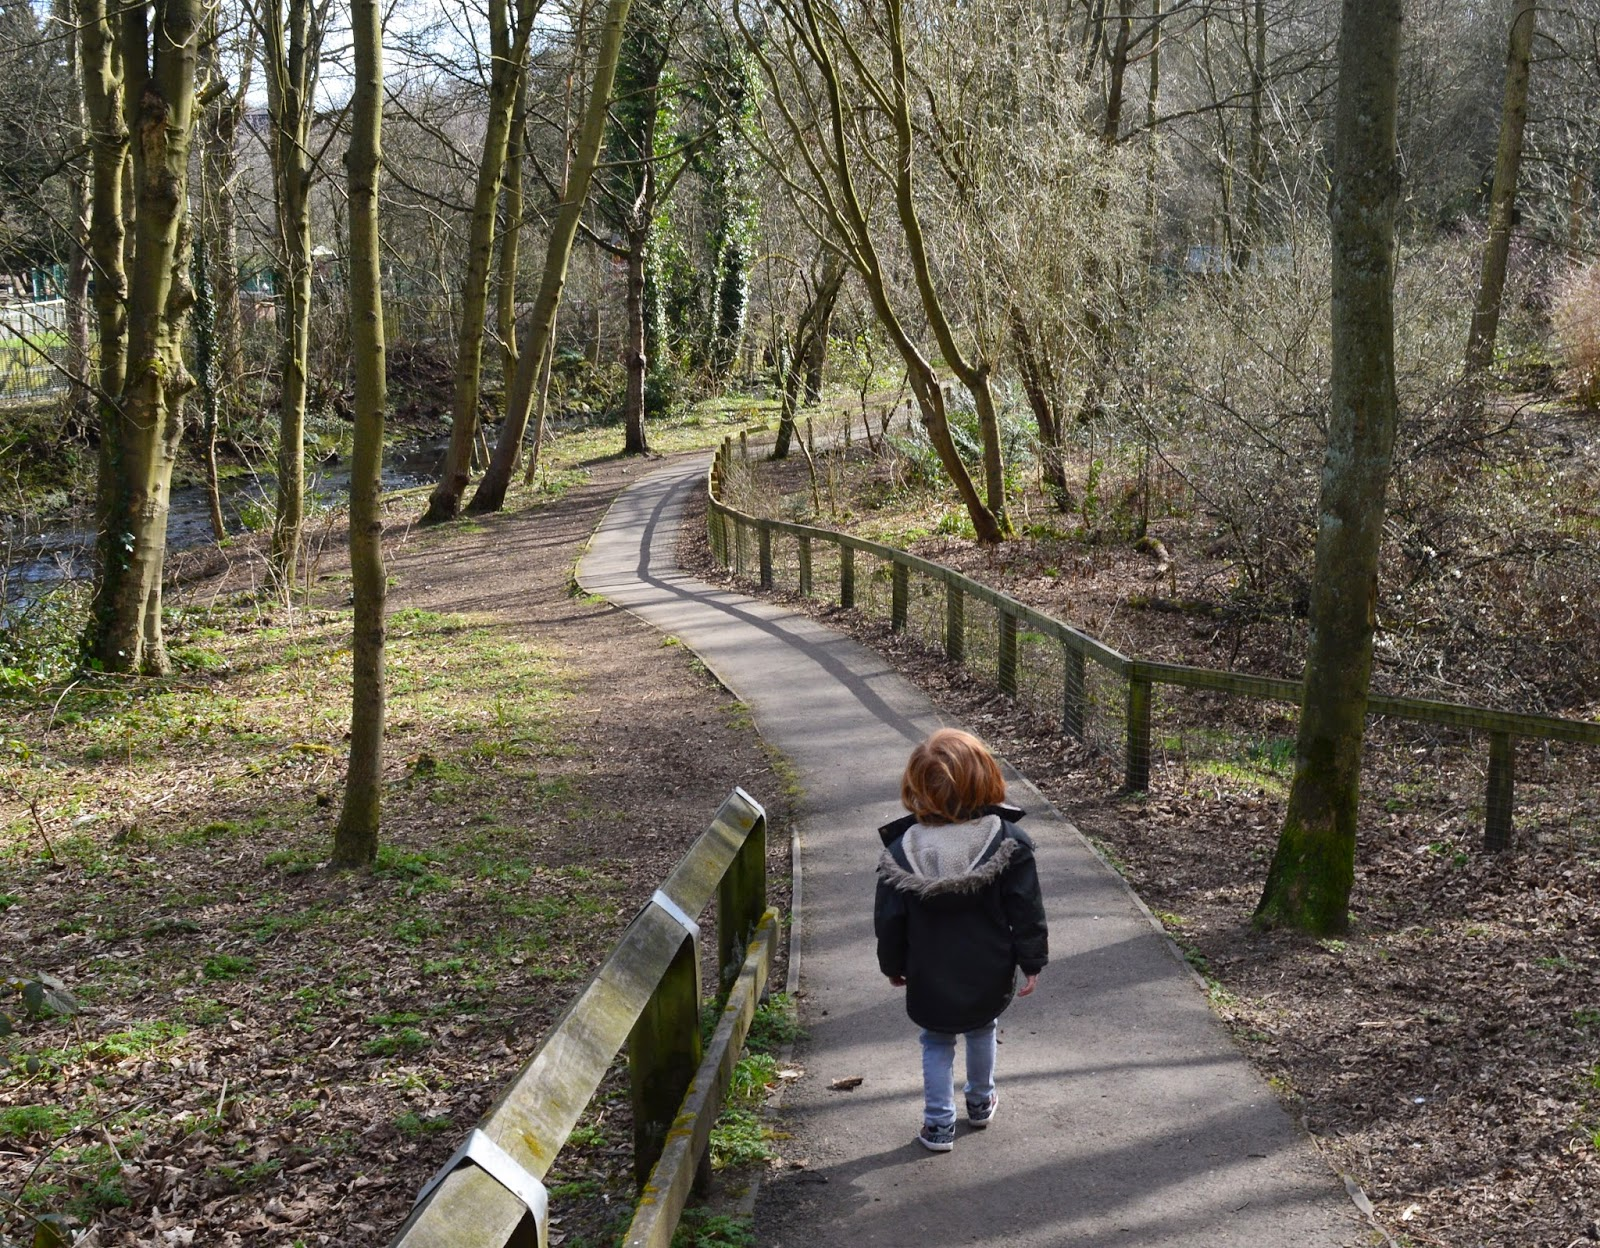 13 of the best pushchair-friendly walks around North East England as recommended by local parents - Jesmond Dene